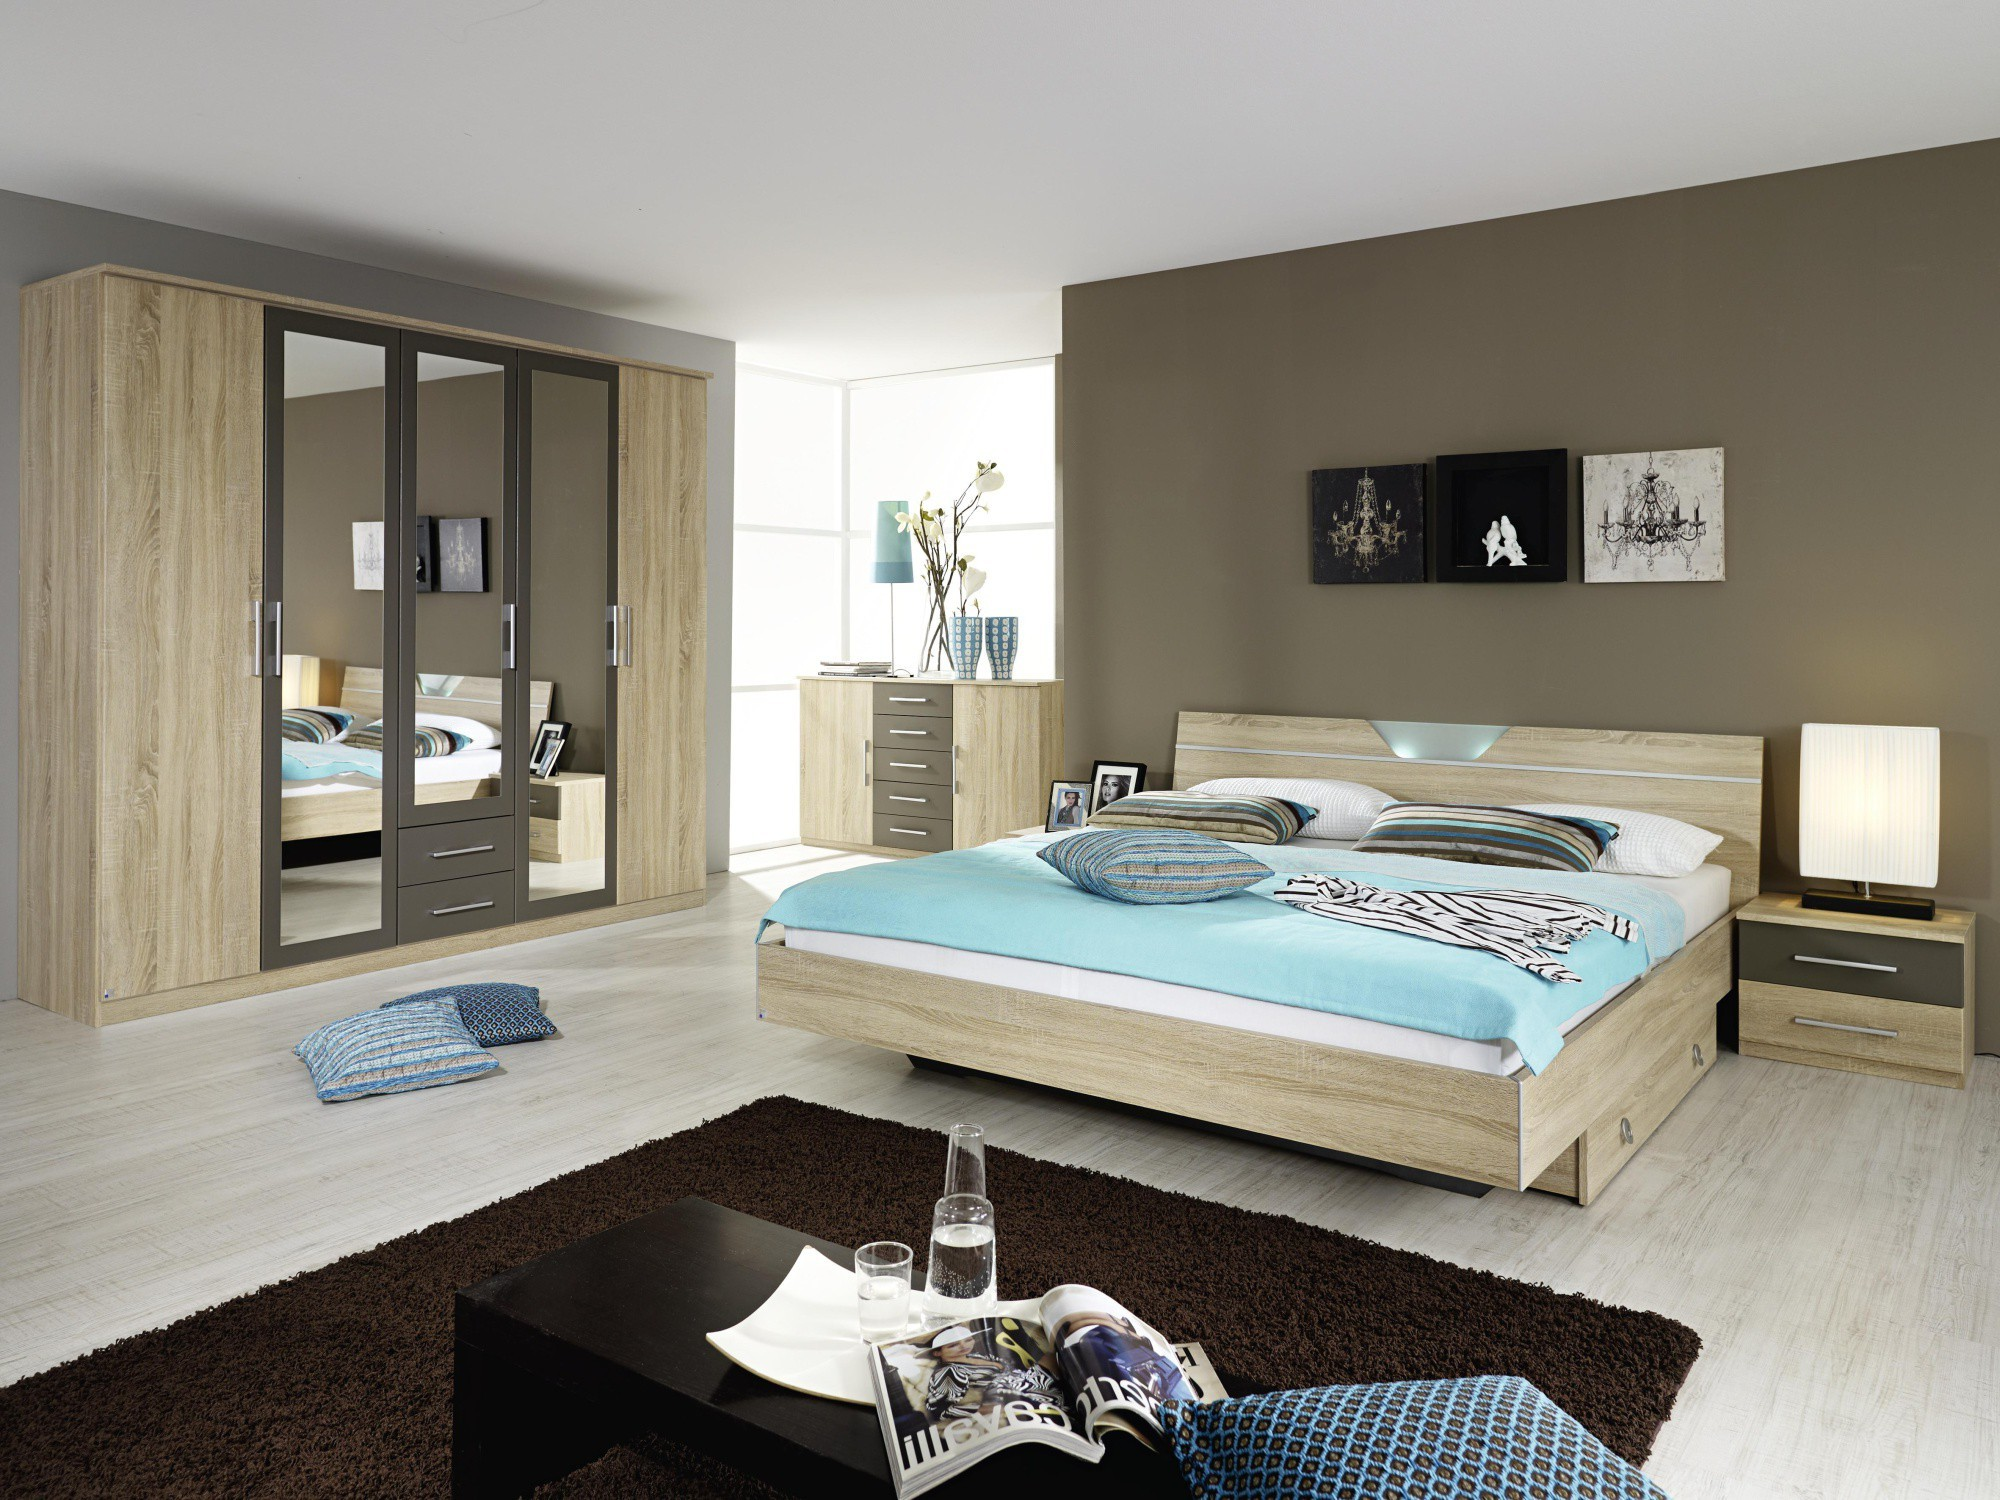 d coration chambre coucher adulte contemporaine chambre id es de d coration de maison. Black Bedroom Furniture Sets. Home Design Ideas